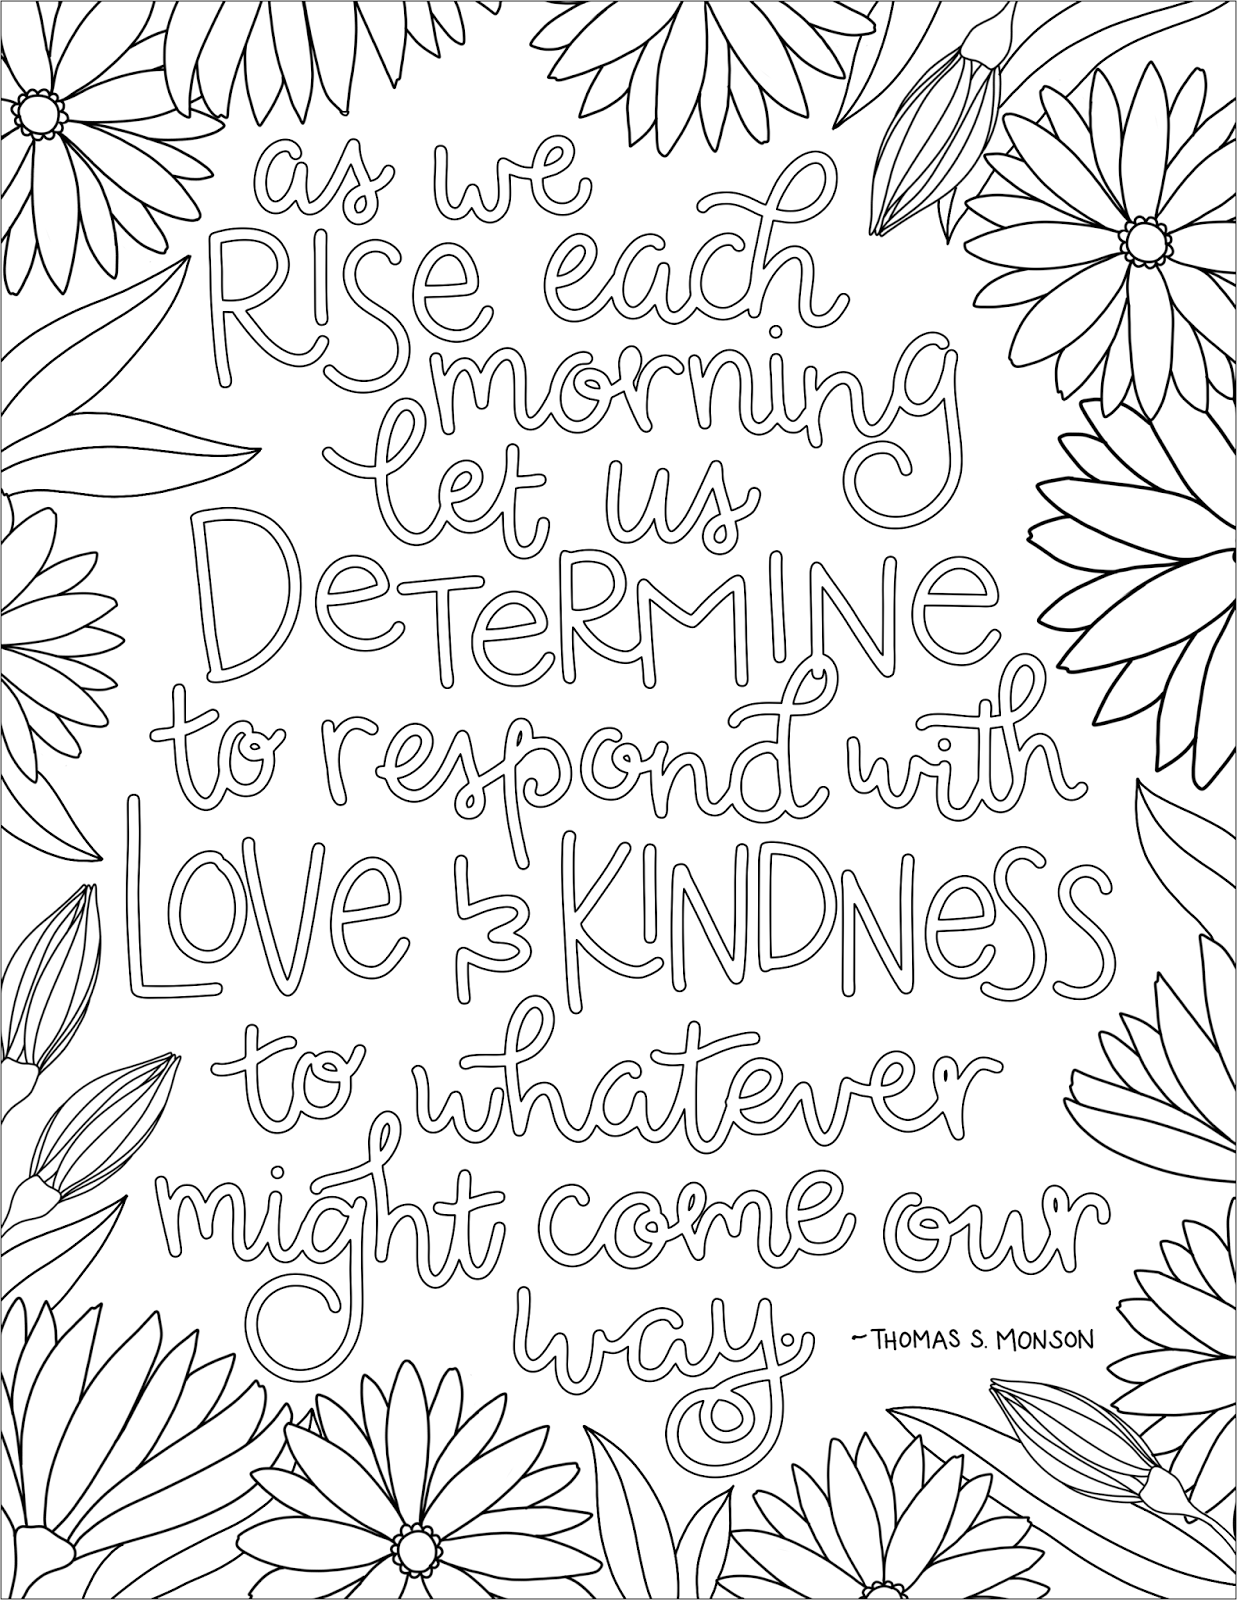 kindness bible coloring pages a personal doodle bekind kindness scripture coloring pages bible kindness coloring